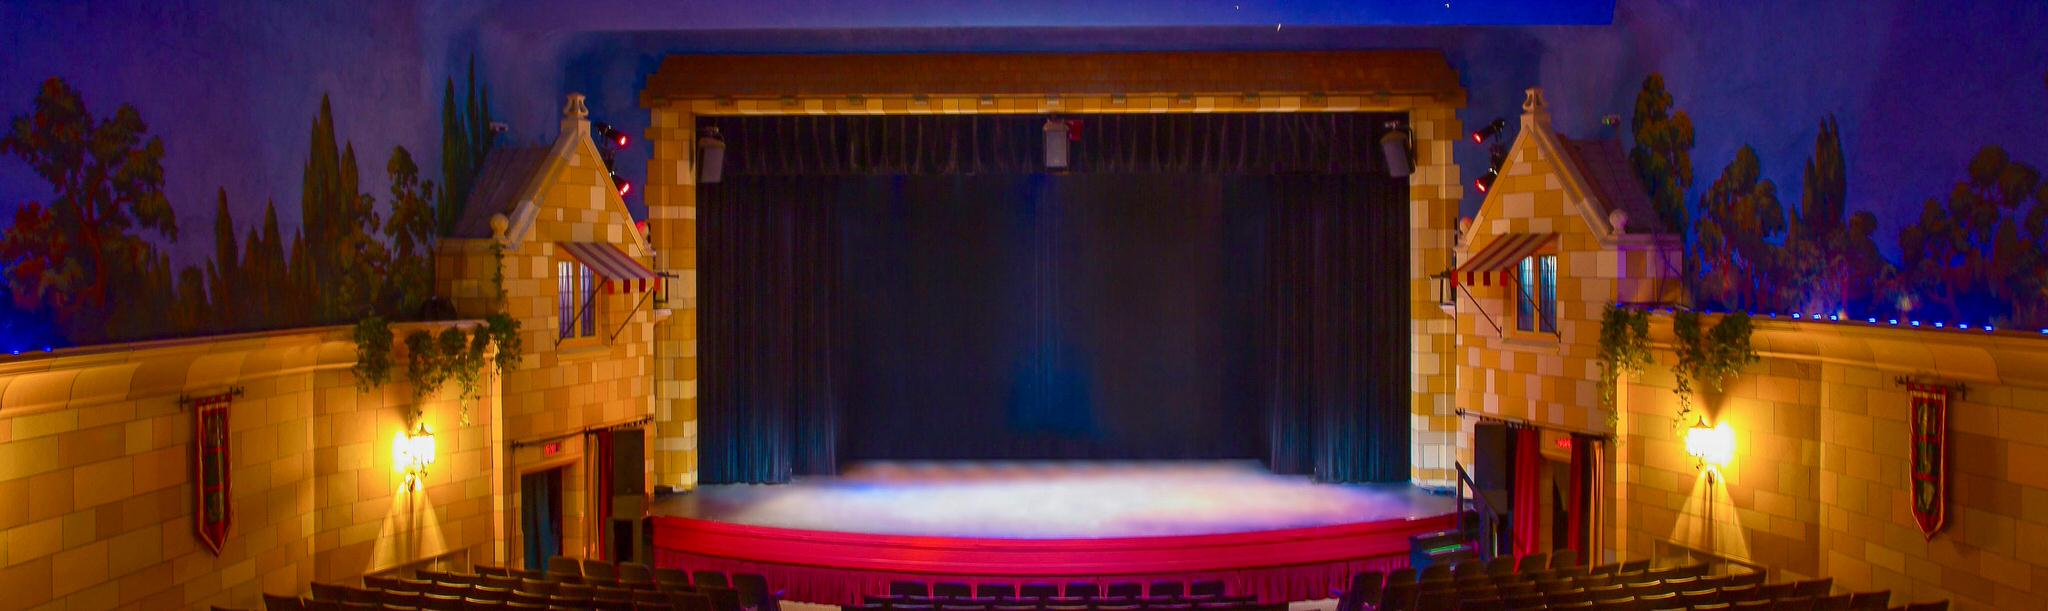 Back row view of a dimly lit theatre and stage